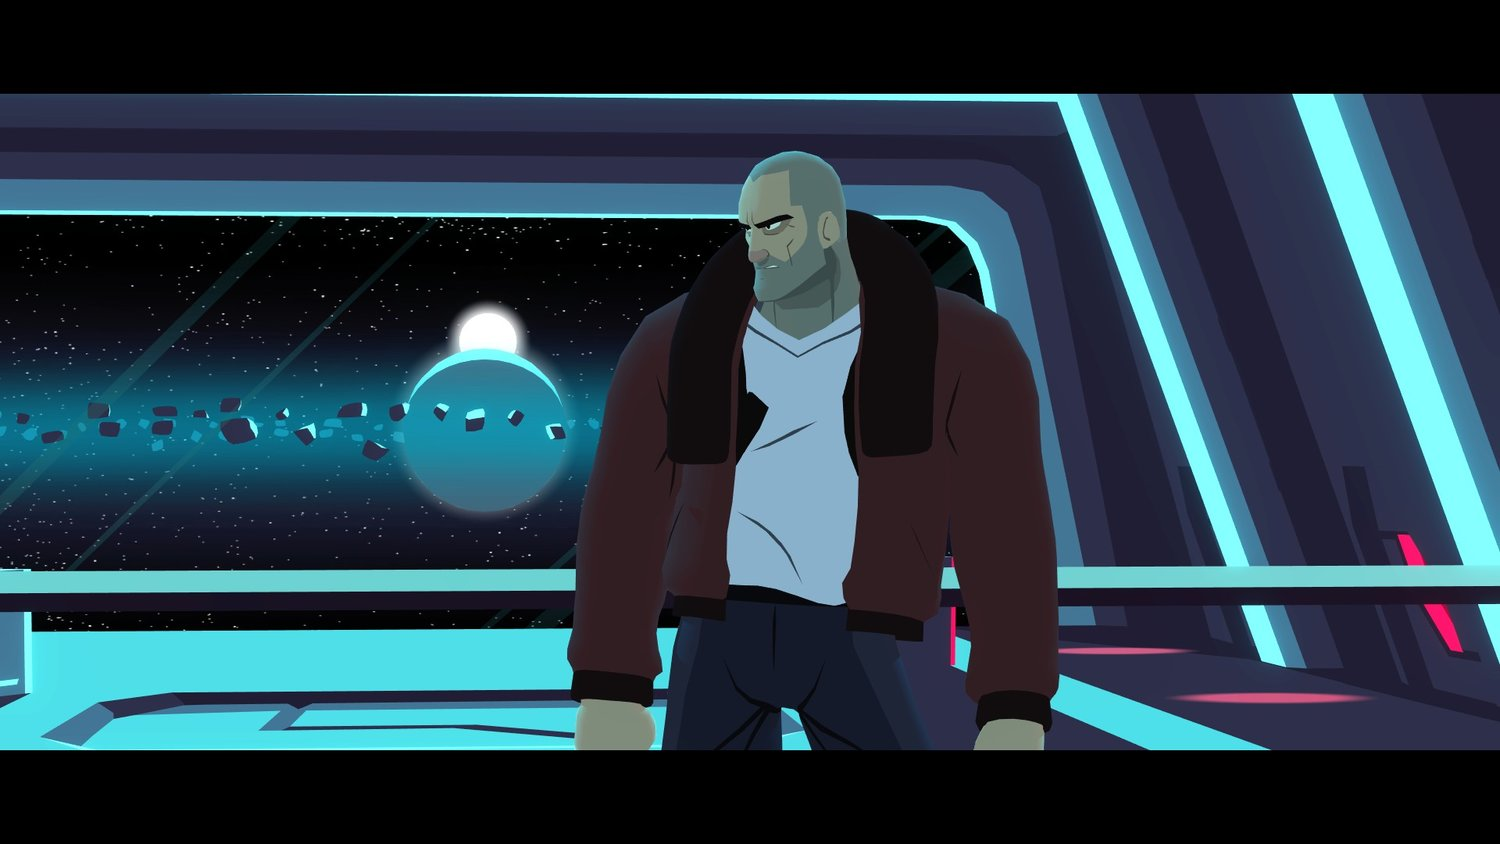 Punch Planet 6 out of 10 image gallery